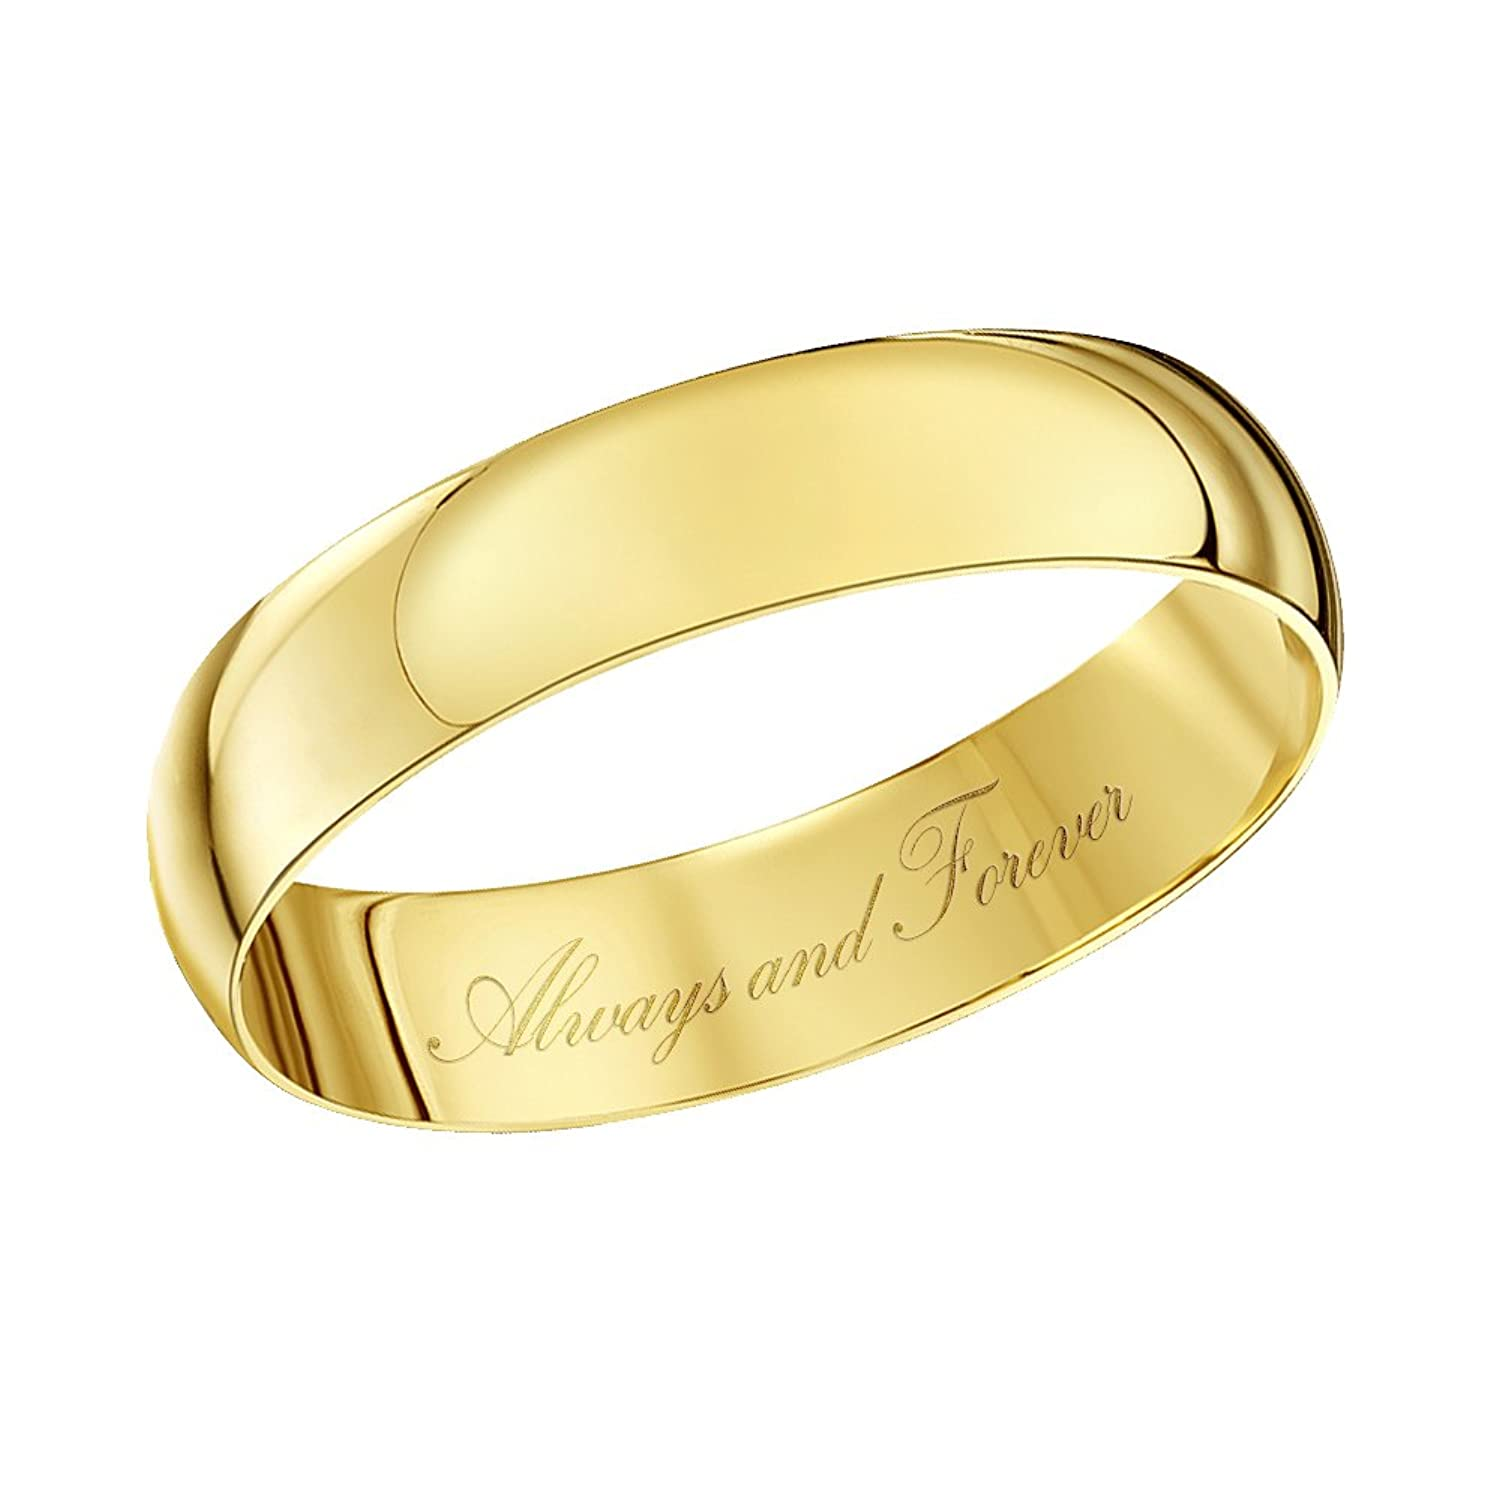 Theia Unisex 9 ct Yellow Gold Heavy D Shape Engraved Polished 4mm Wedding Ring B078FHCZ52